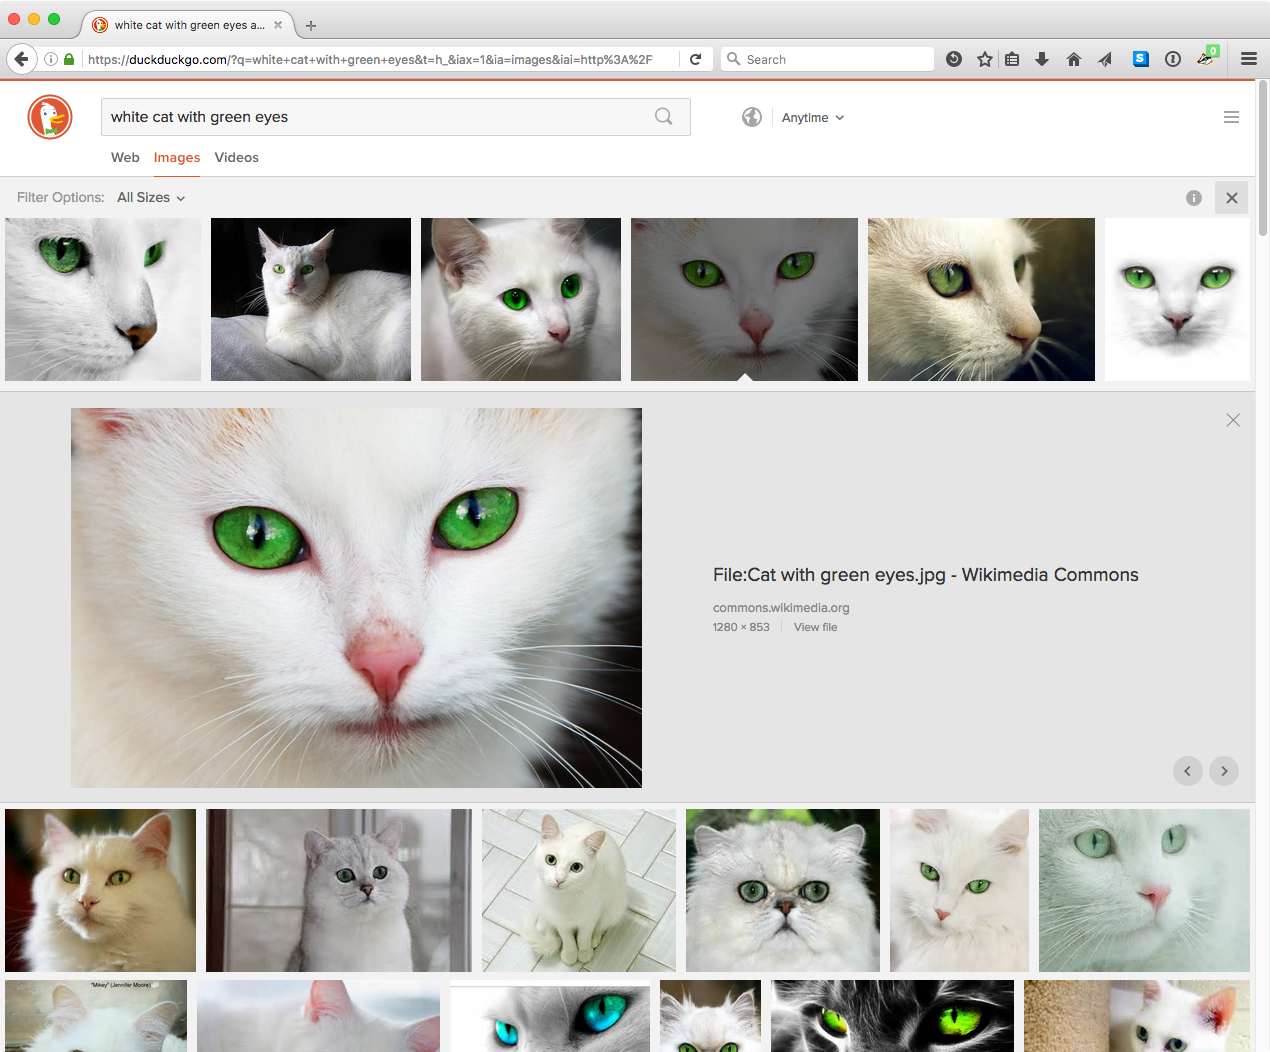 duckduckgo-white-cat-image-search